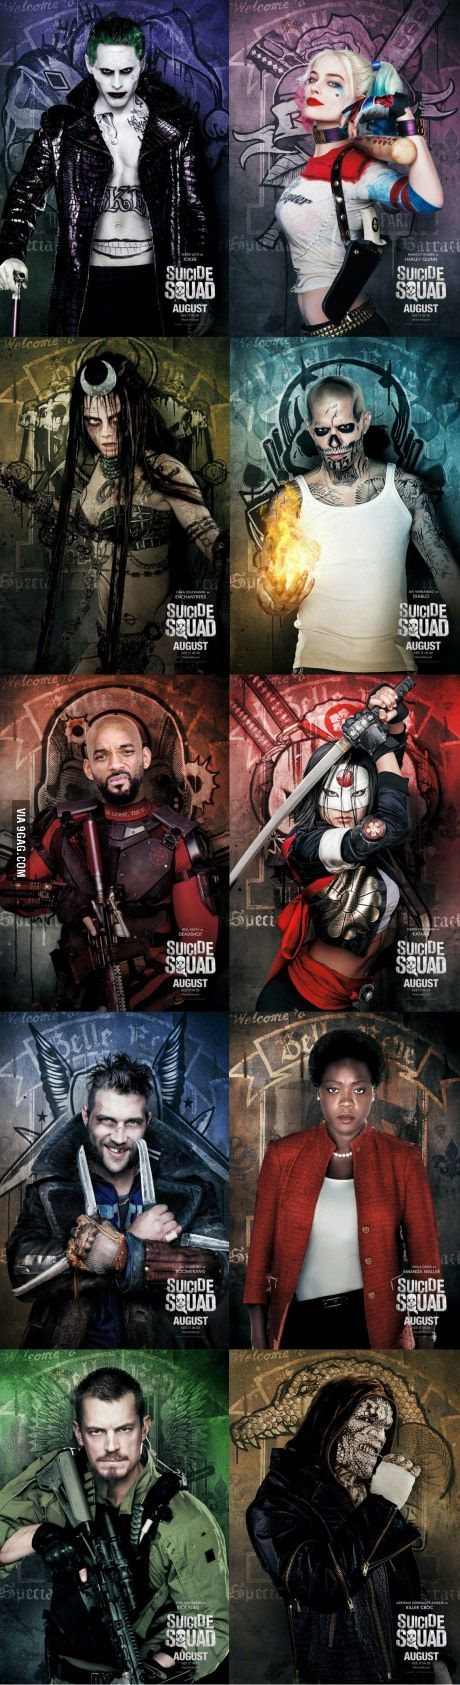 New Suicide Squad character posters! Who else is excited for this???? Because I know I am